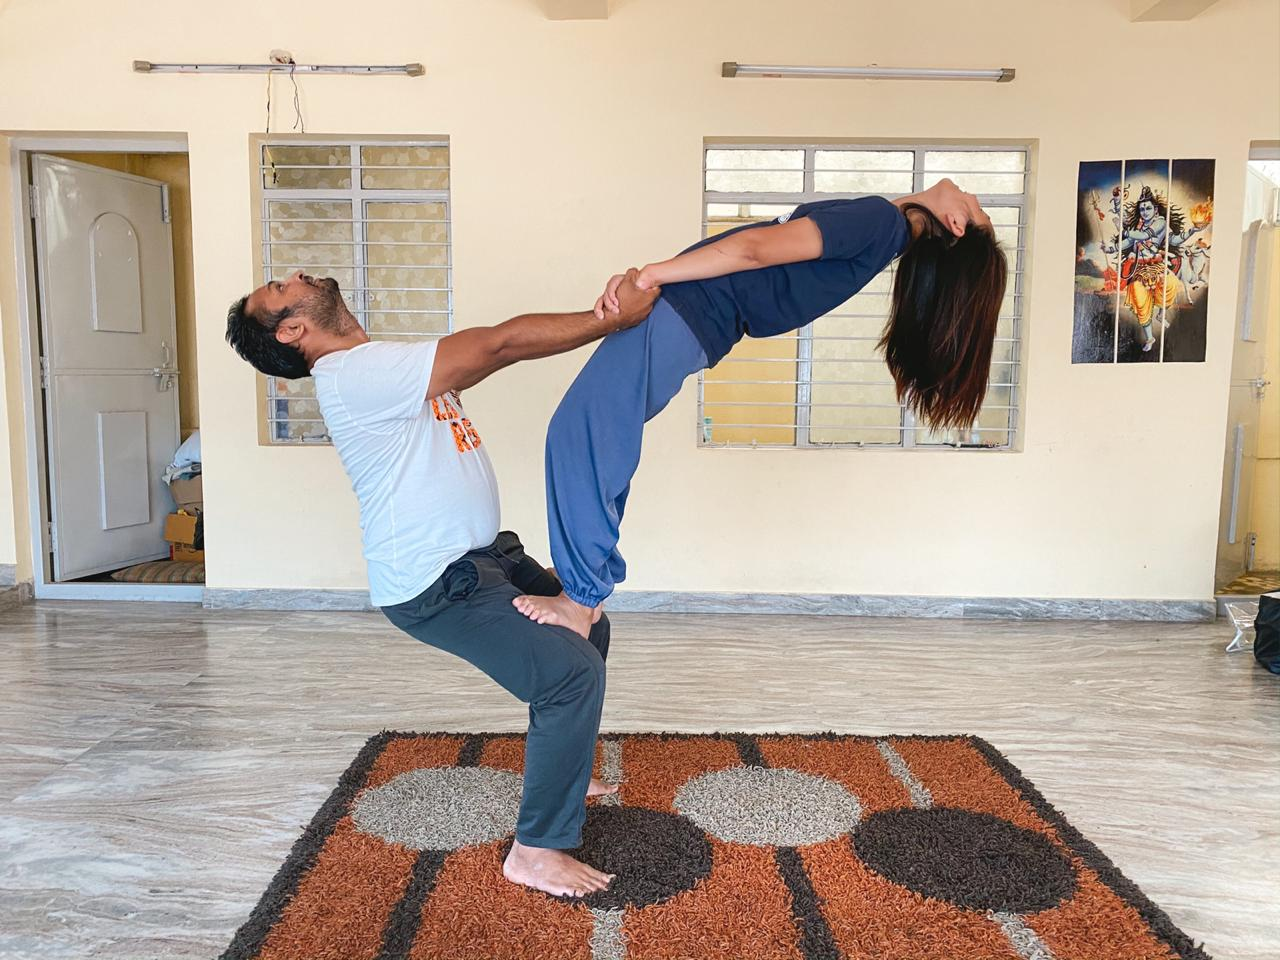 Stretching to open up the Body for Asanas